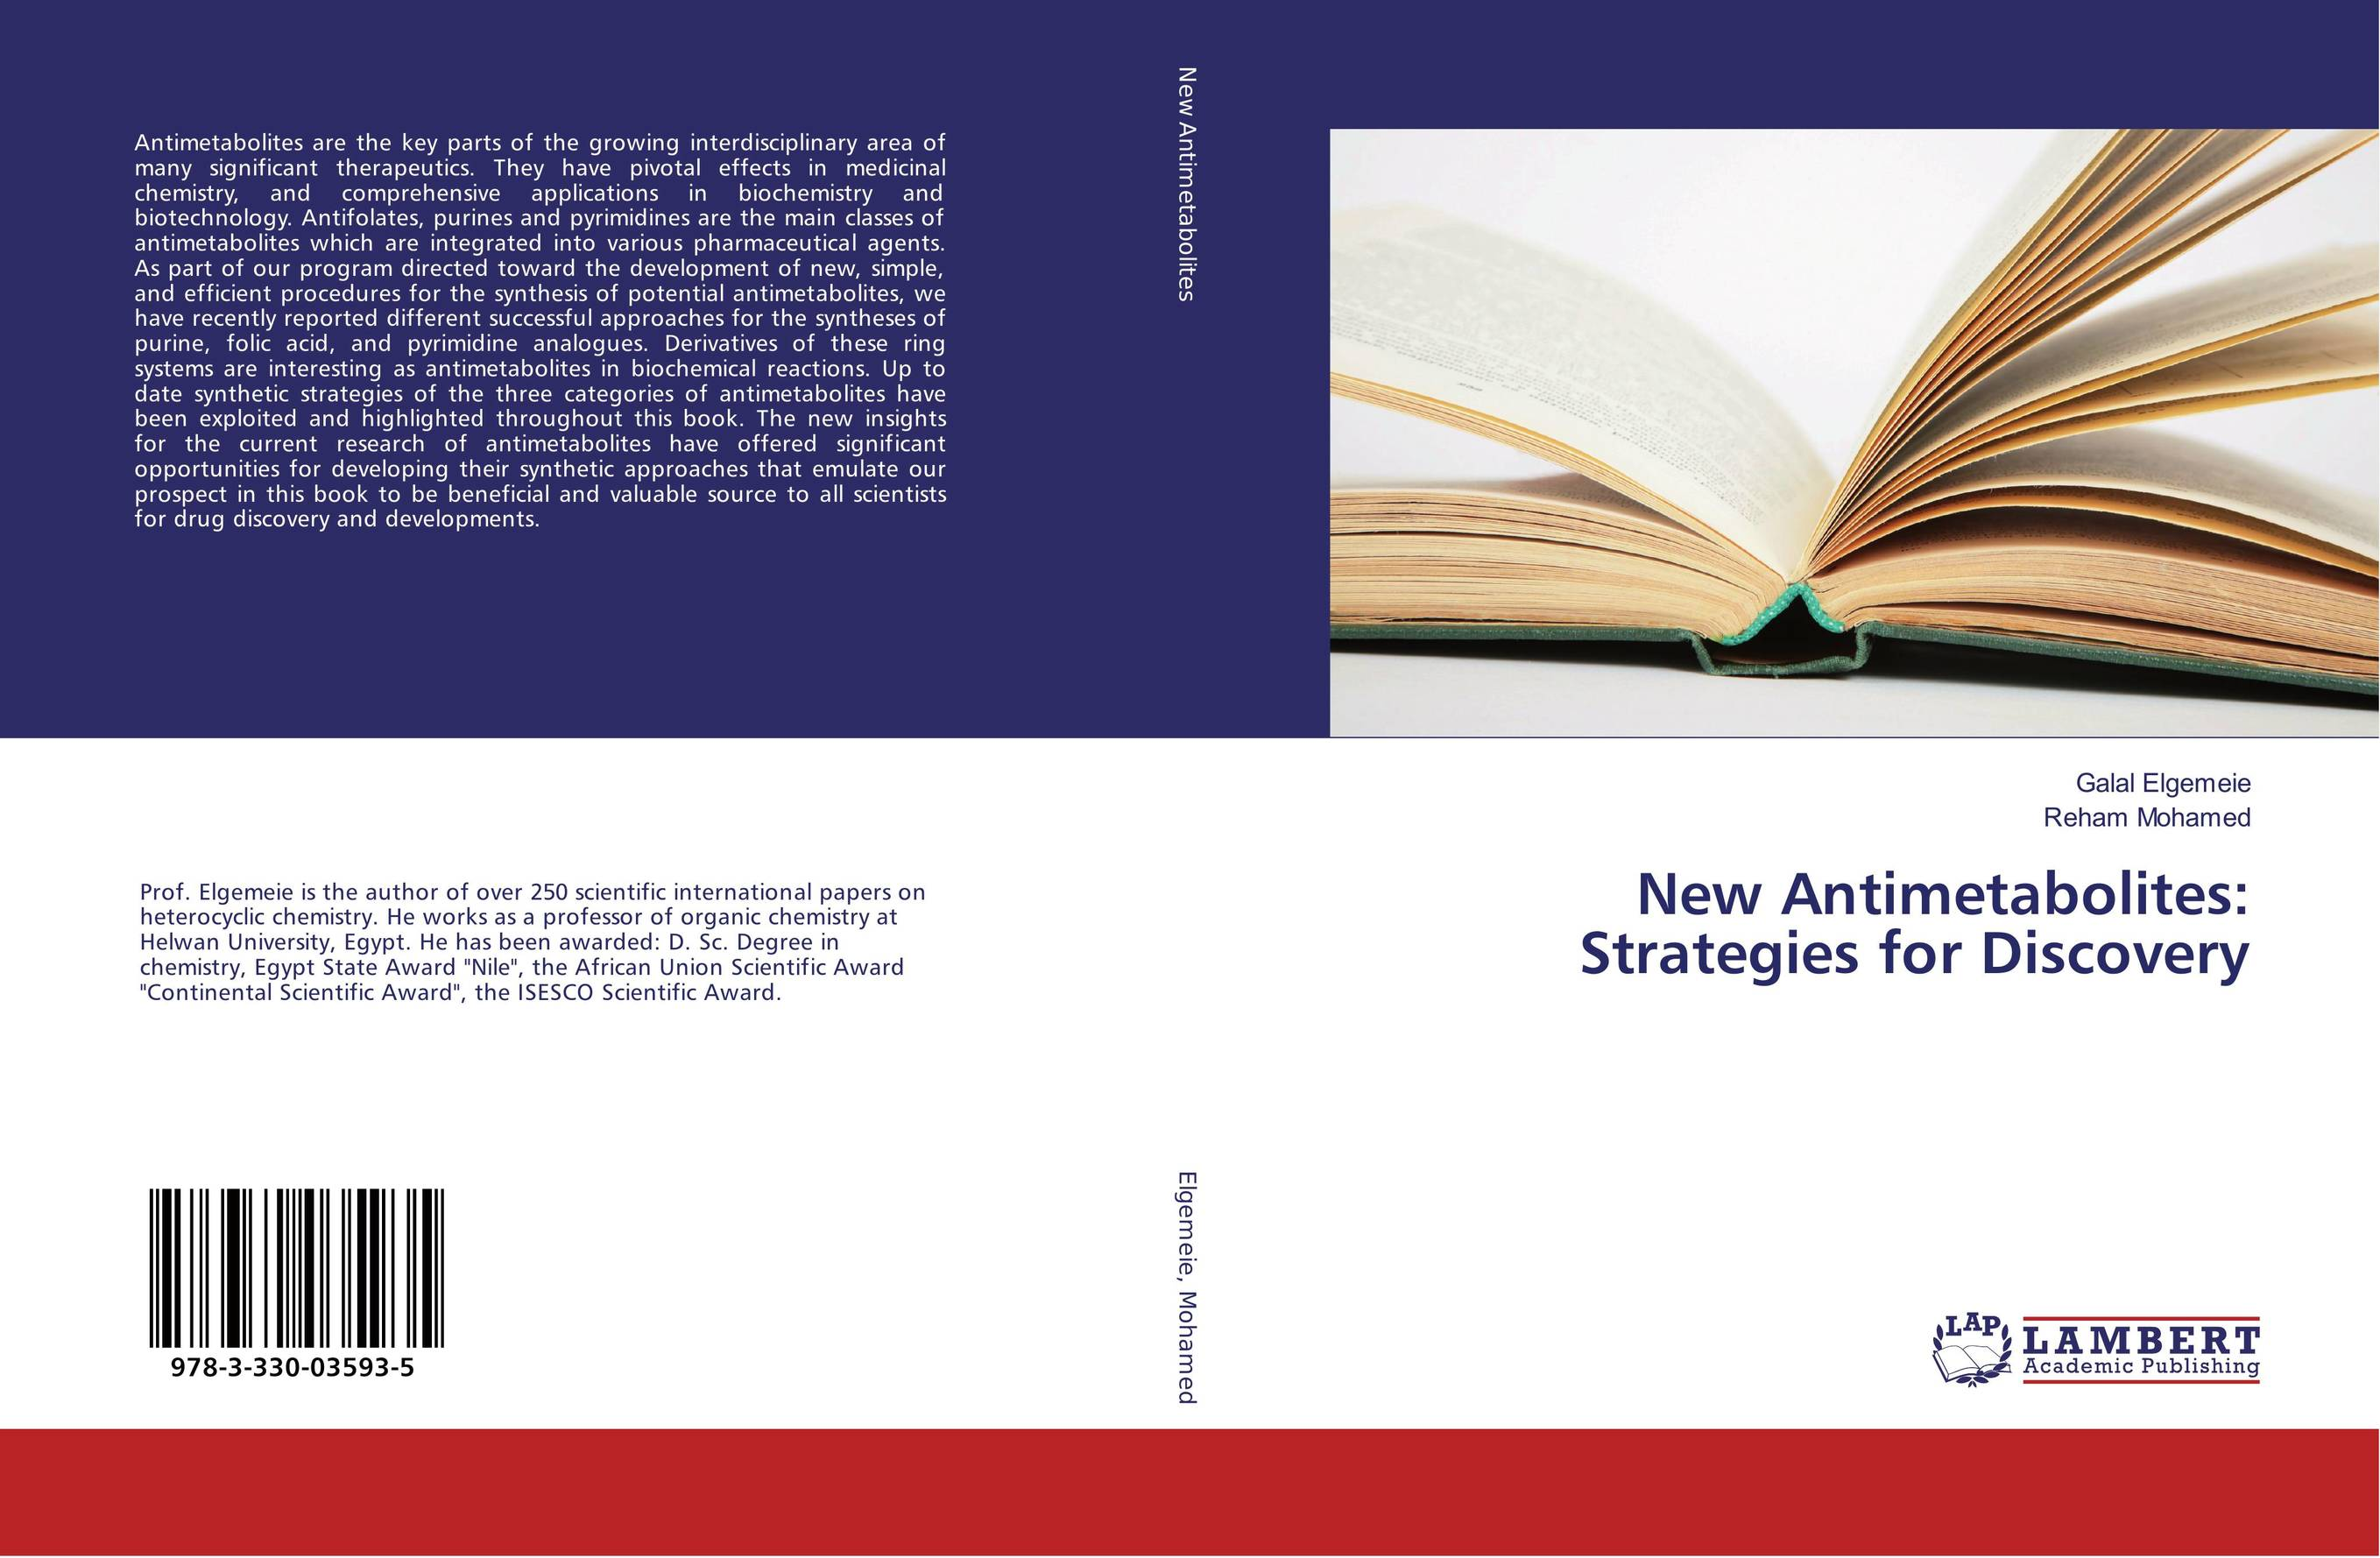 9783330035935 New Antimetabolites Strategies for Discovery Galal Elgemeie and